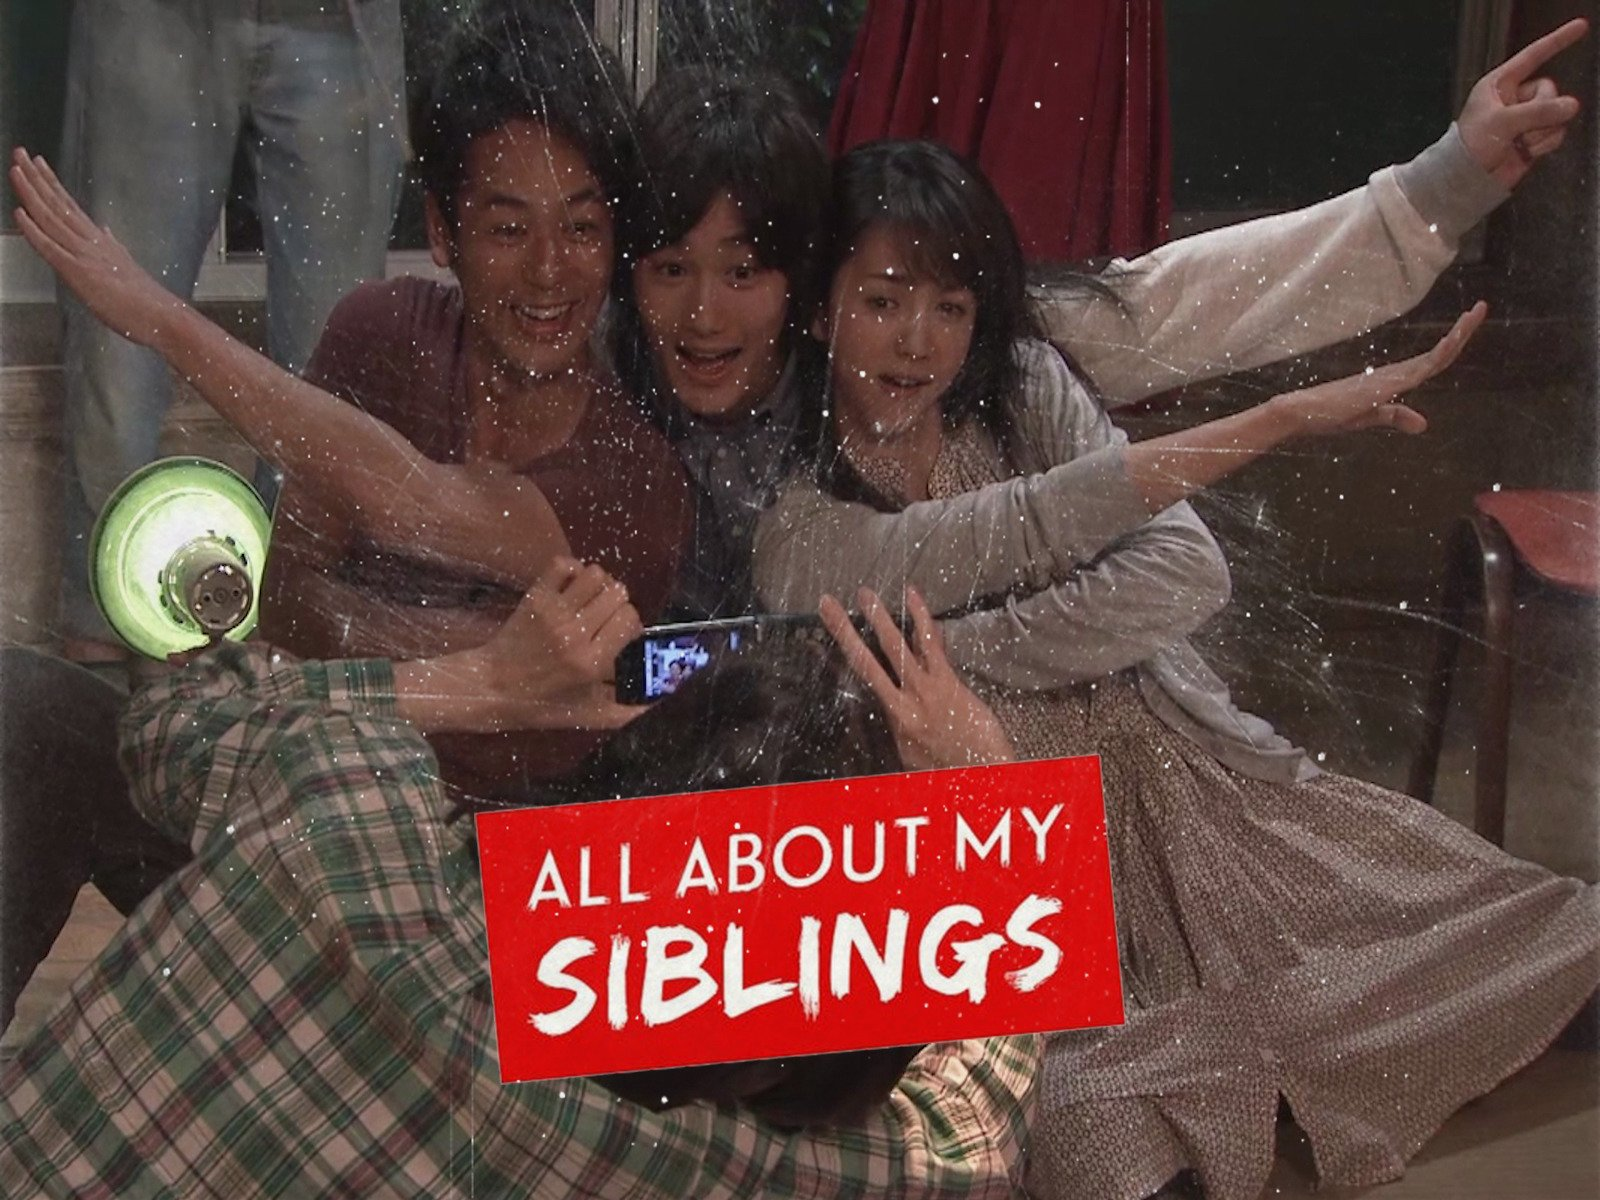 All About My Siblings